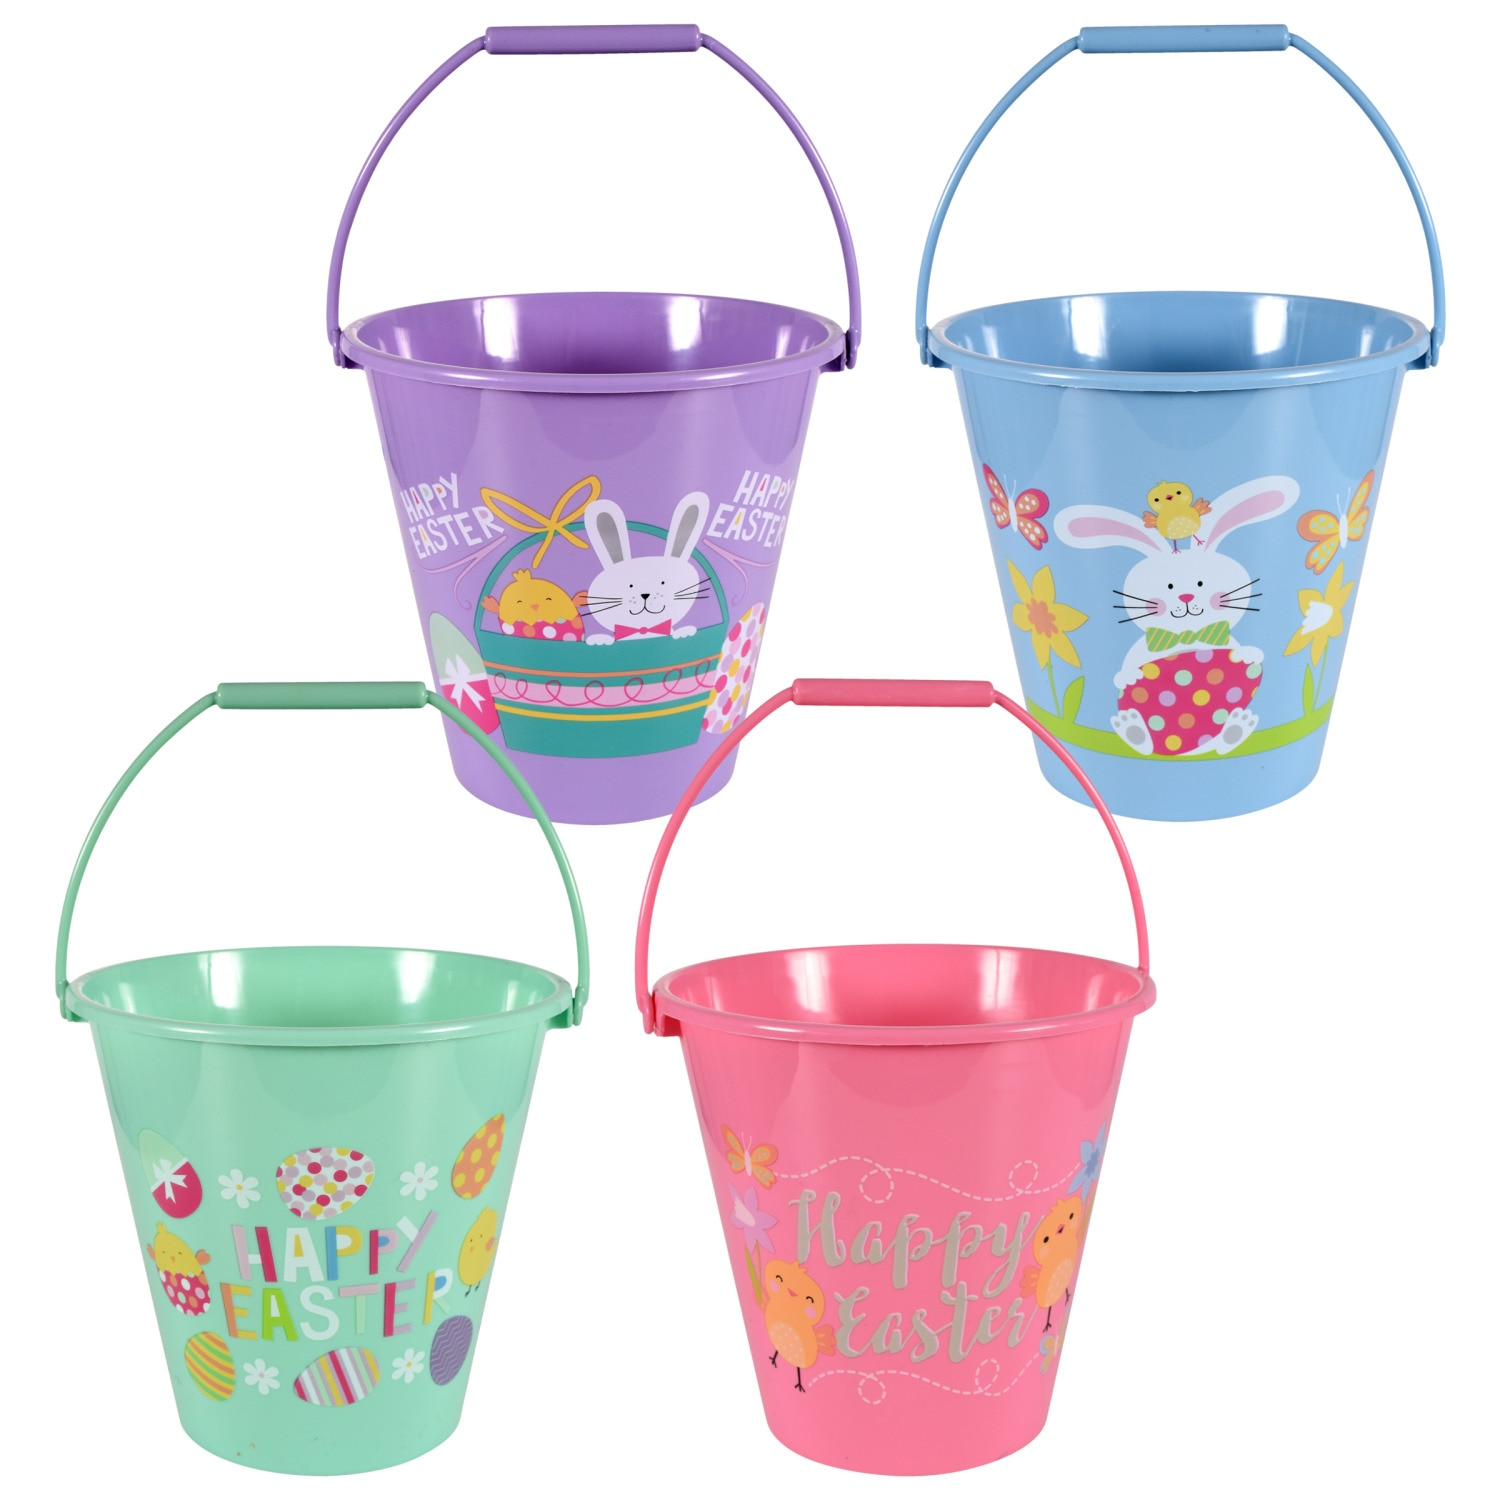 Plastic Printed Easter Pails, 7.25 in.